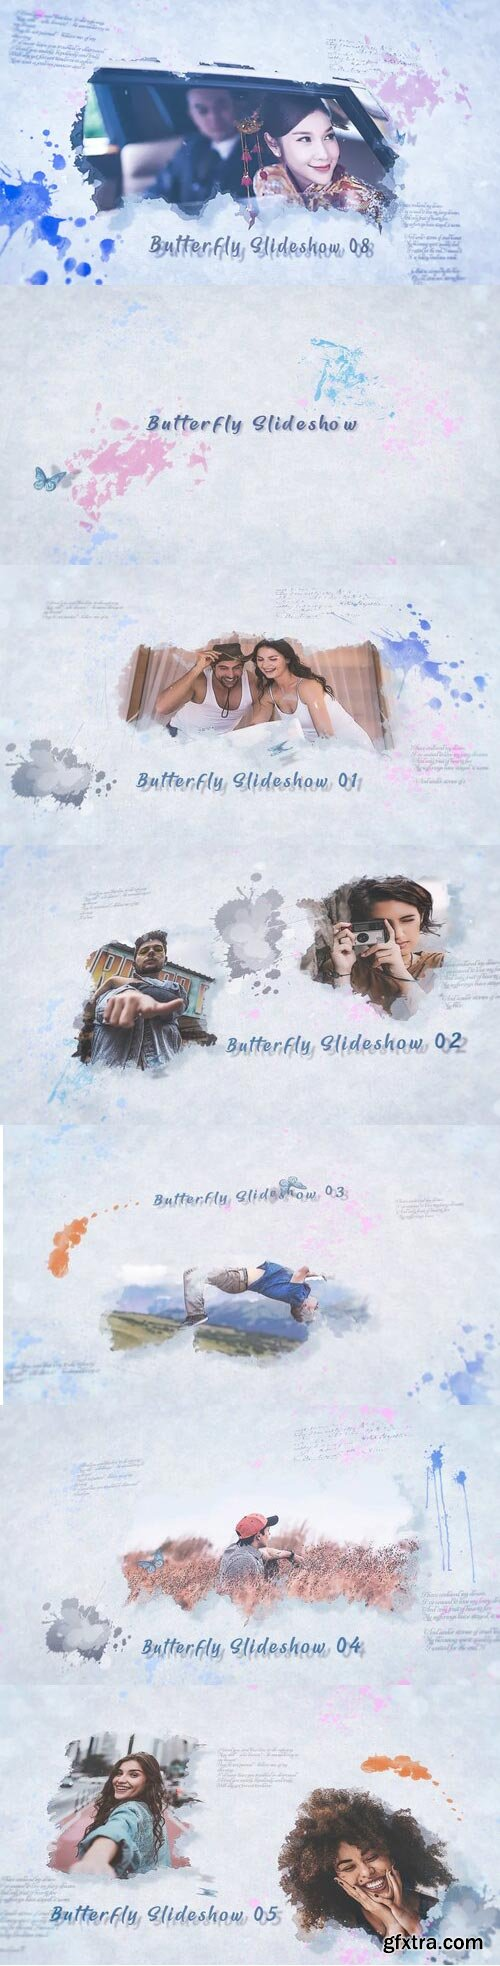 Videohive - Butterfly Slideshow - 31997826